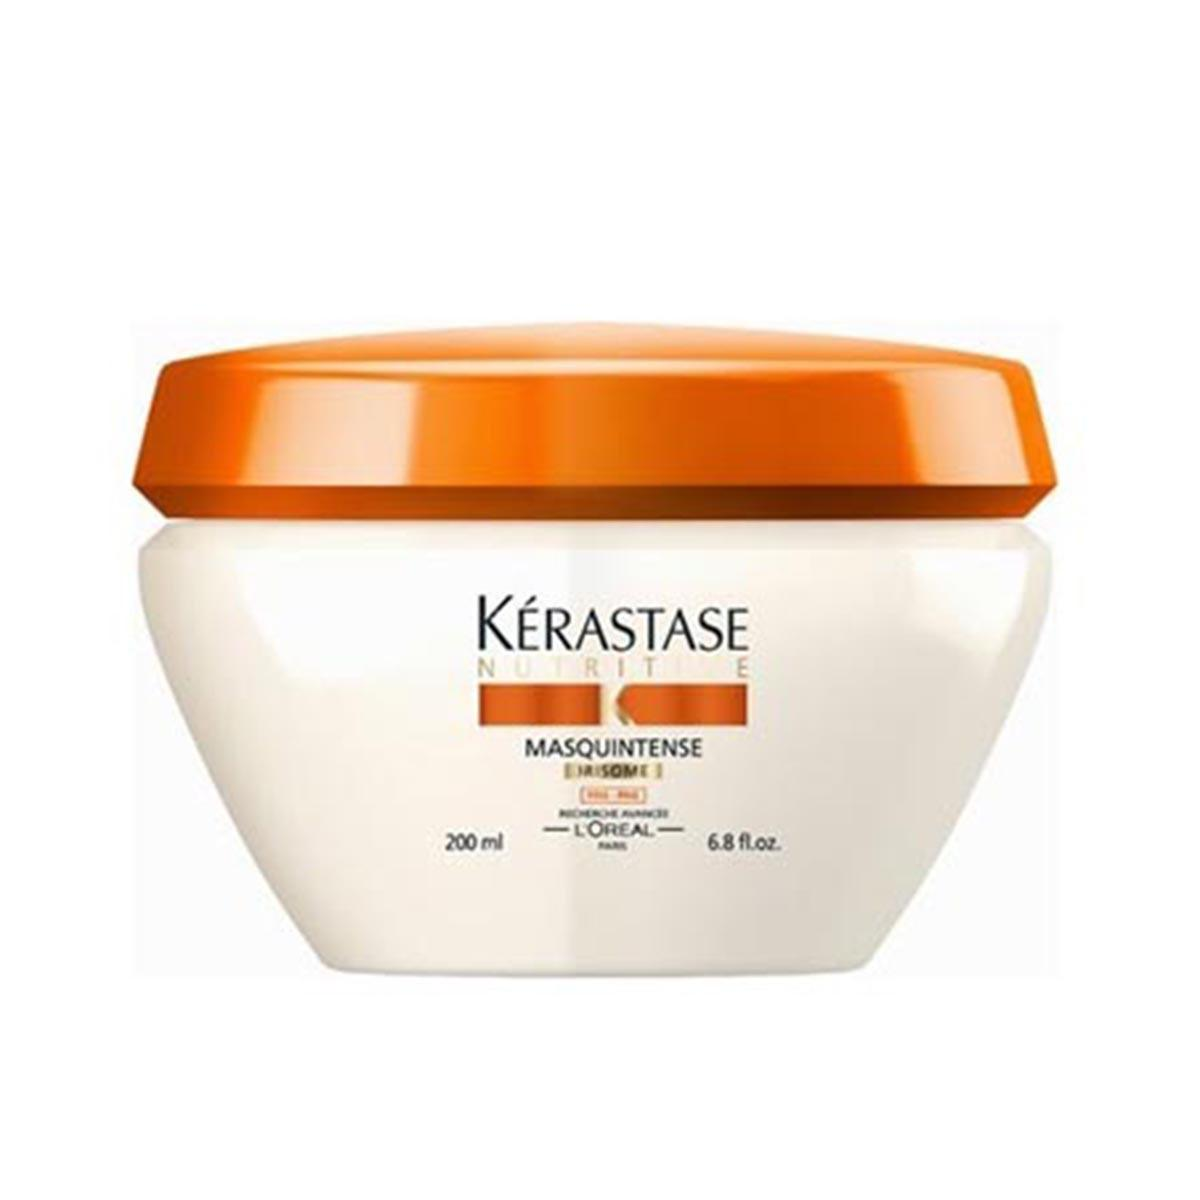 Kerastase Nutritive Masquintense Thin Hair 200 ml